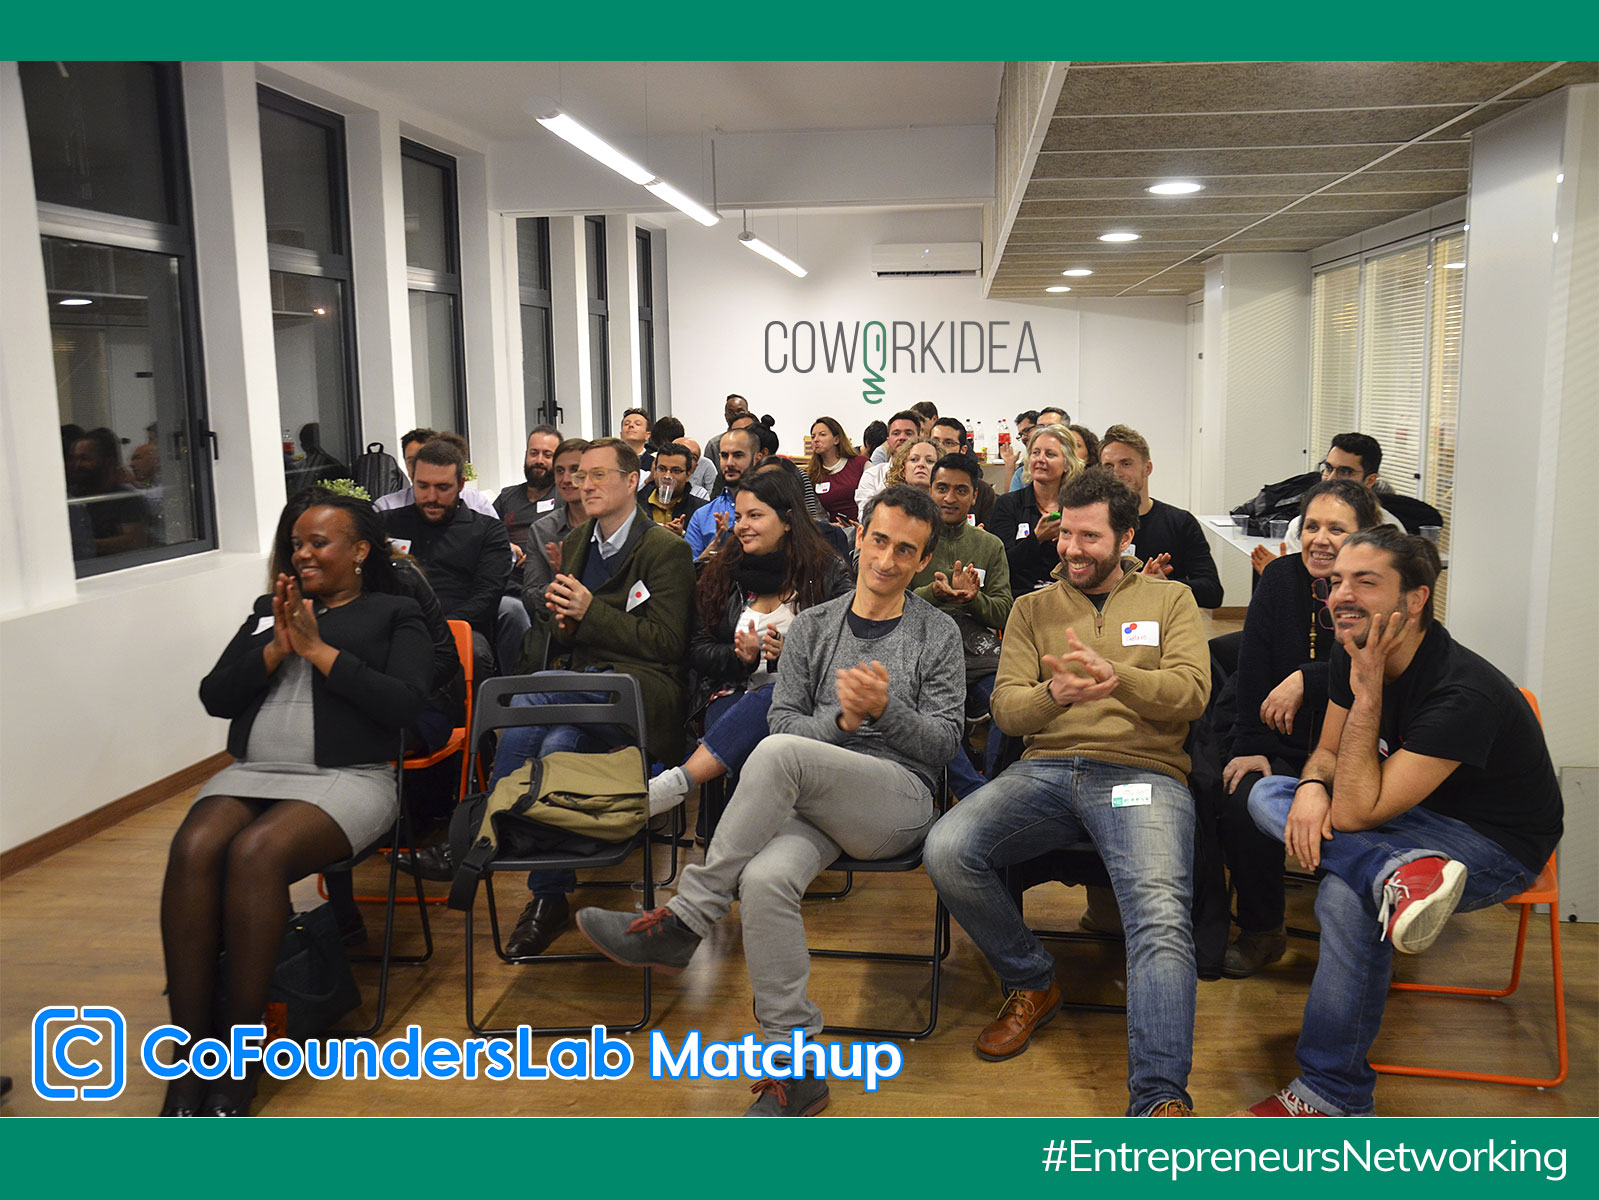 Co Founders Lab Matchup en Coworkidea